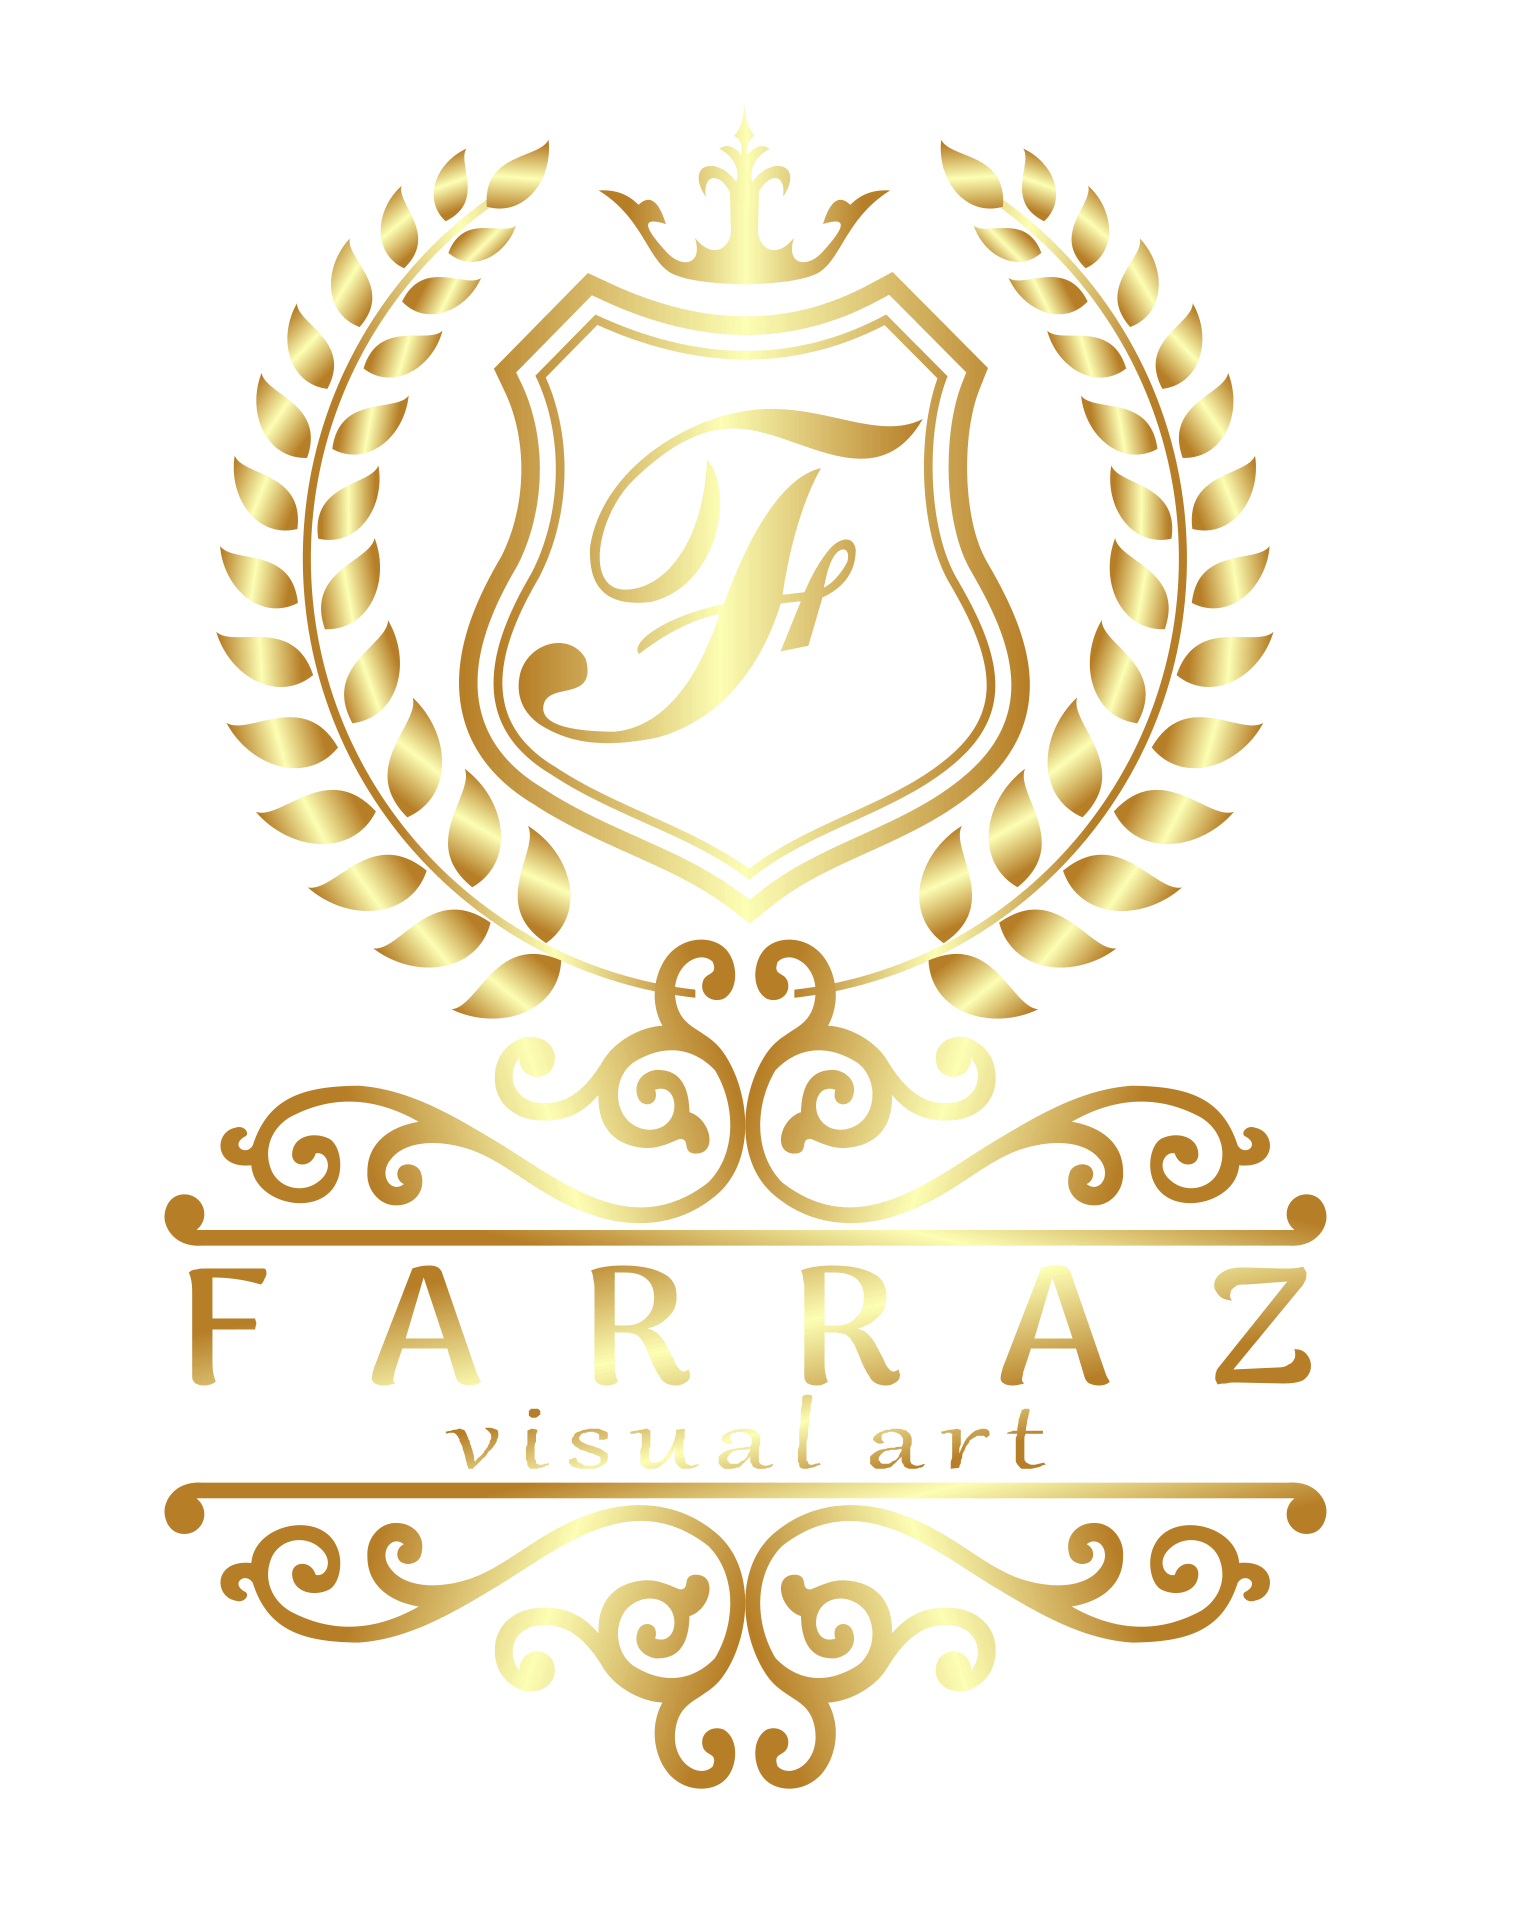 Farraz Visual Art